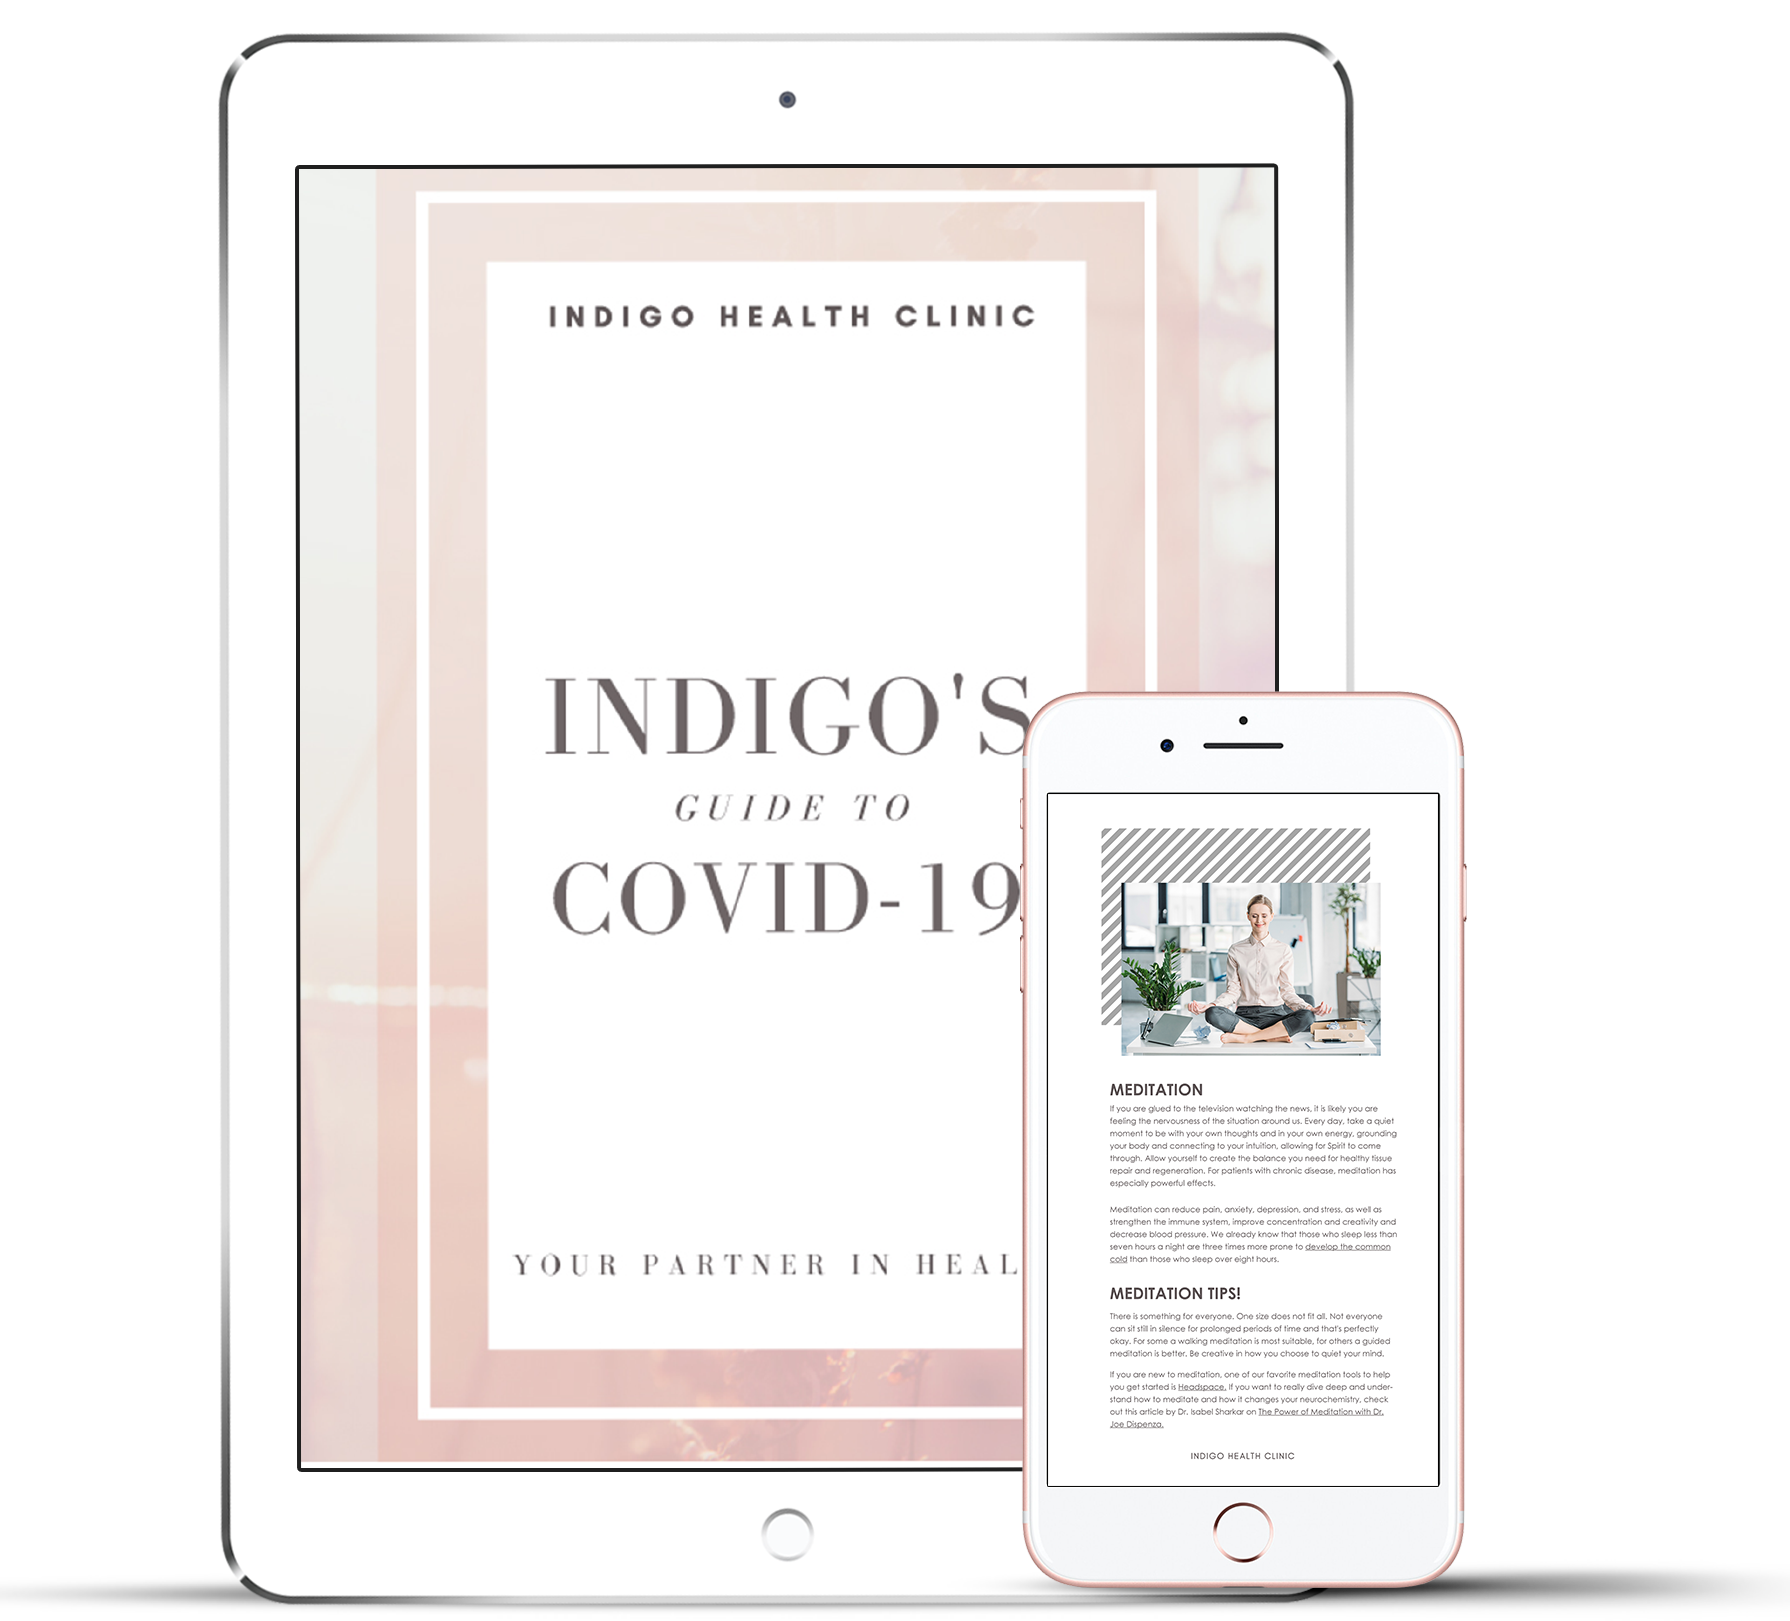 indigo's guide to covid-19